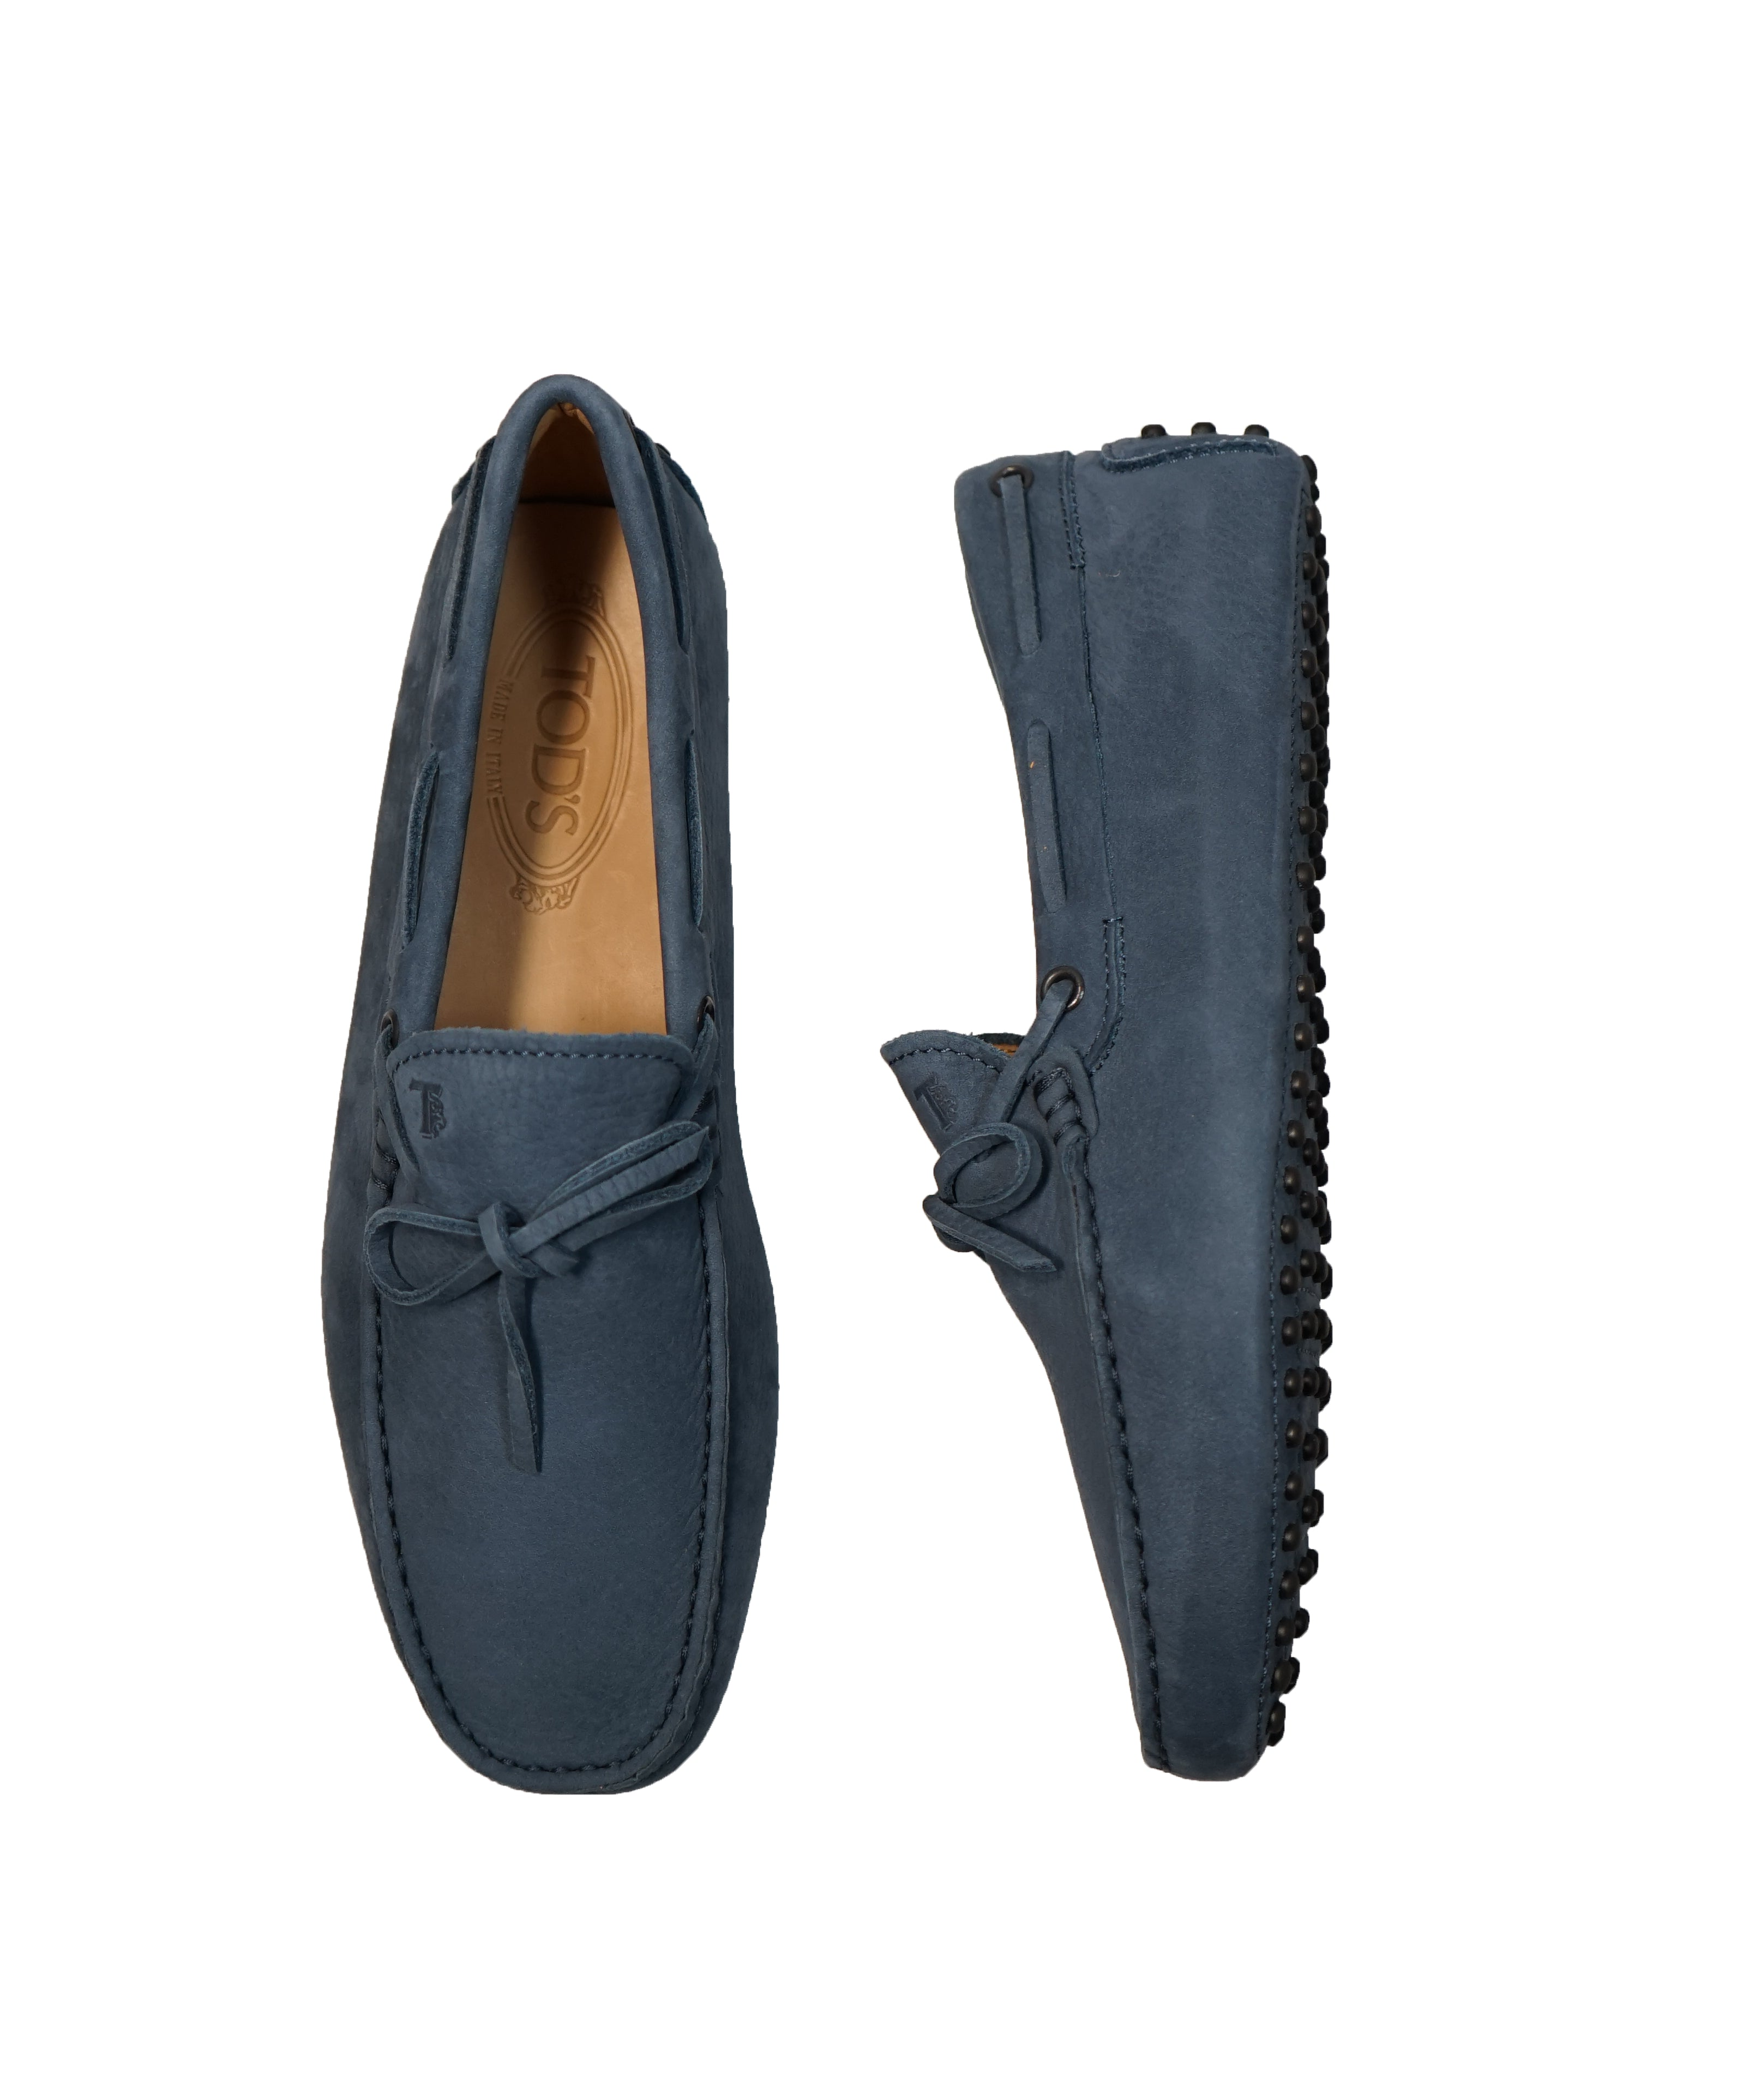 TOD'S - Gommini Laccetto Powder Blue Suede Driving Loafers - 7.5